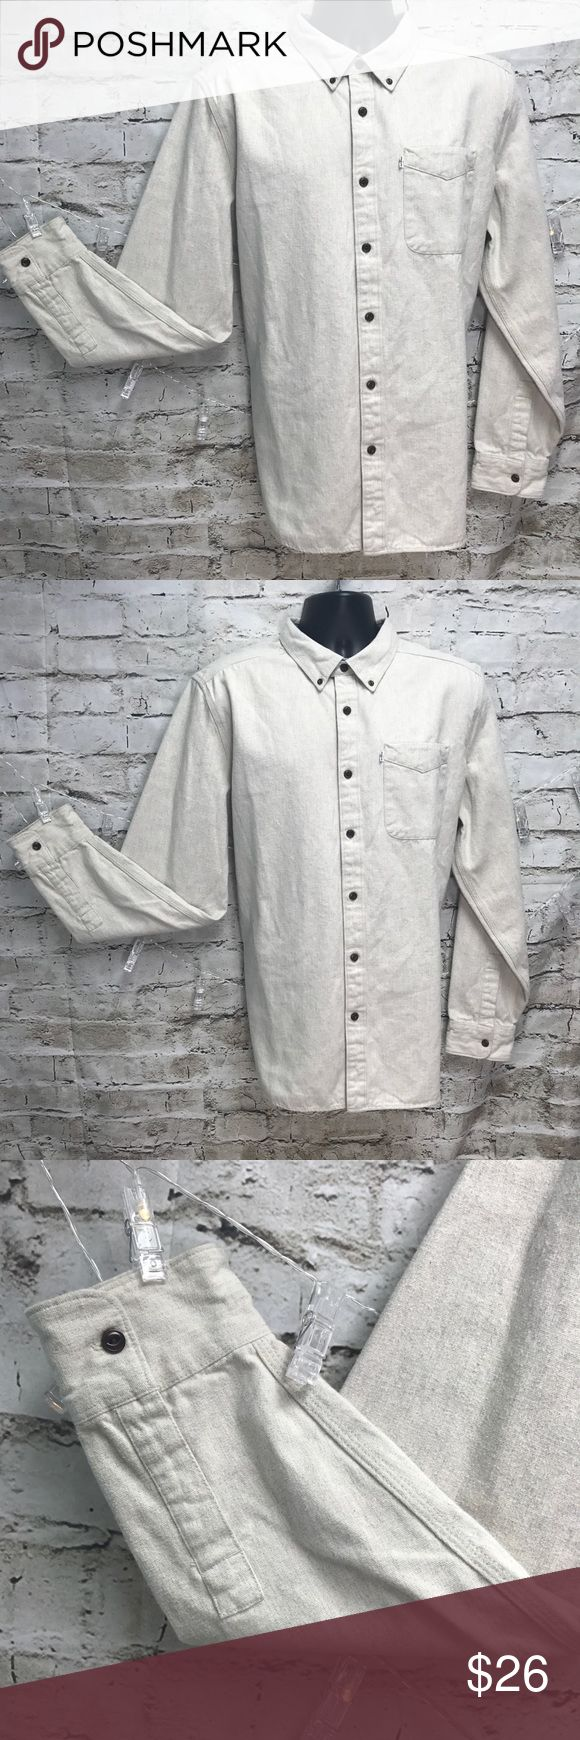 """Men's Levi's Cream Denim Button Down Shirt Men's dressy casual Levi's button shirt. Preowned but looks new. Size XL. Flat lay measurements from back of collar to bottom of shirt 33"""", sleeve 28"""", arm pit to arm pit 25"""". Thank you for looking and I invite you to check out my closet & boutique for more! Save 15% by bundling two items! Levi's Shirts Casual Button Down Shirts"""